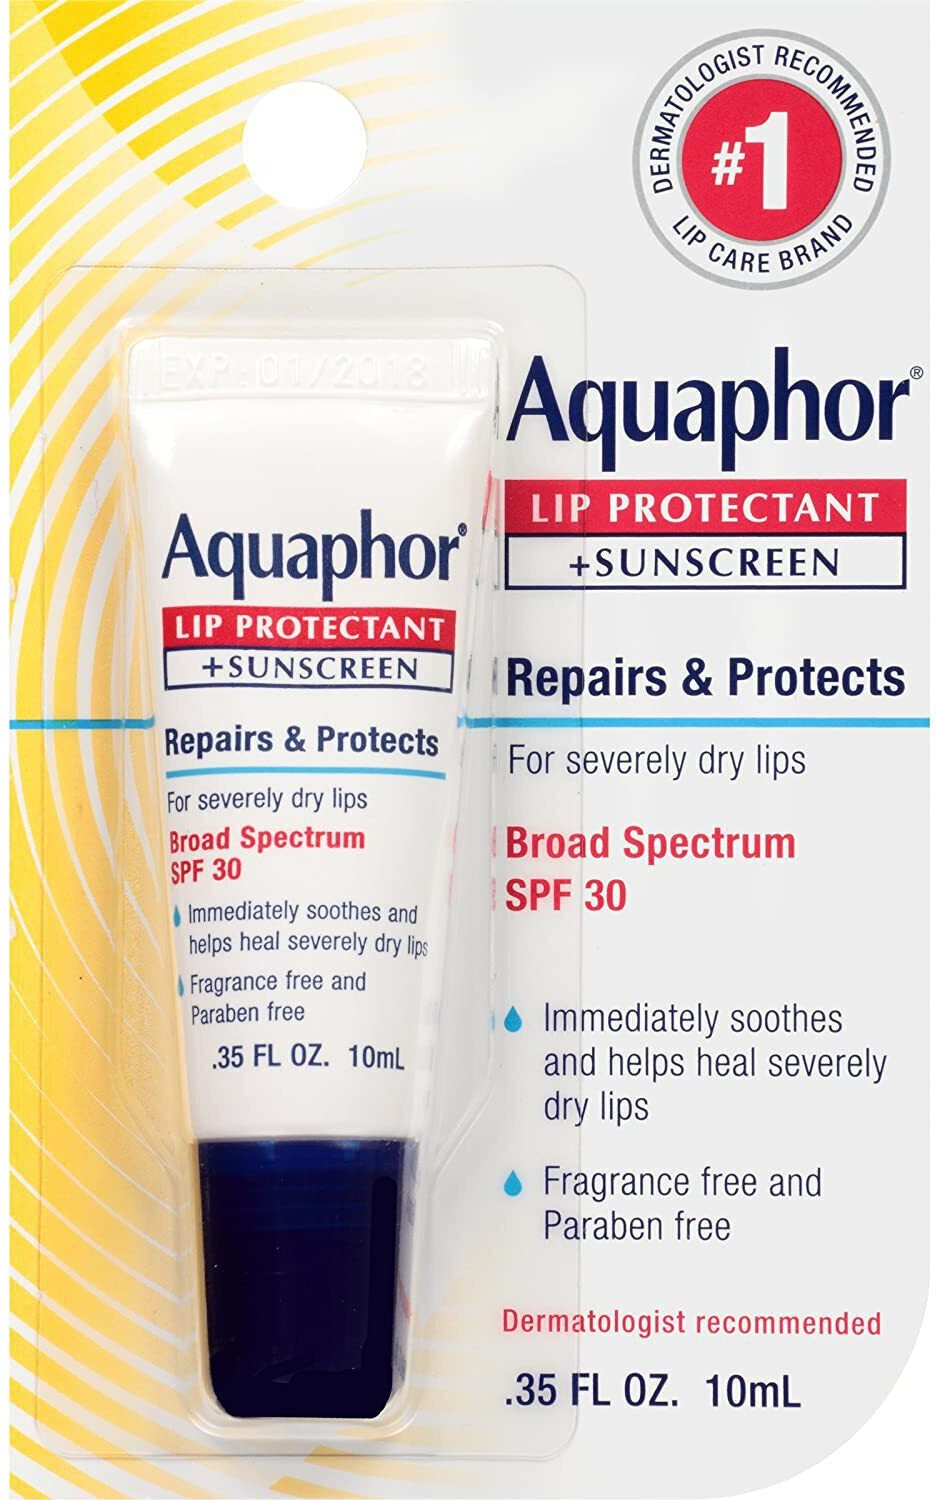 Aquaphor Lip Protectant + Sunscreen